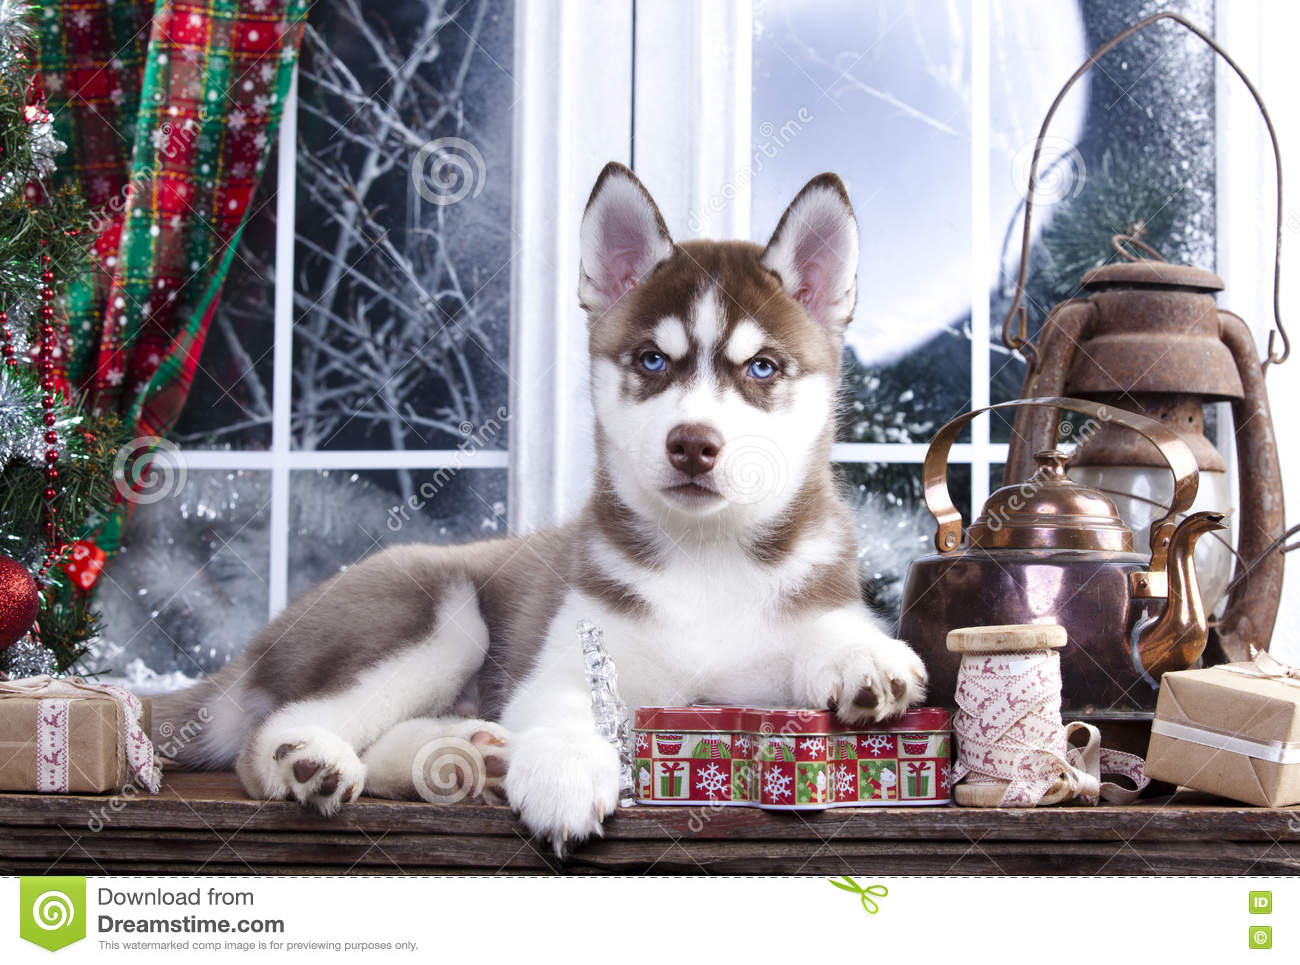 download puppy and christmas decorations stock image image of husky playful 80978529